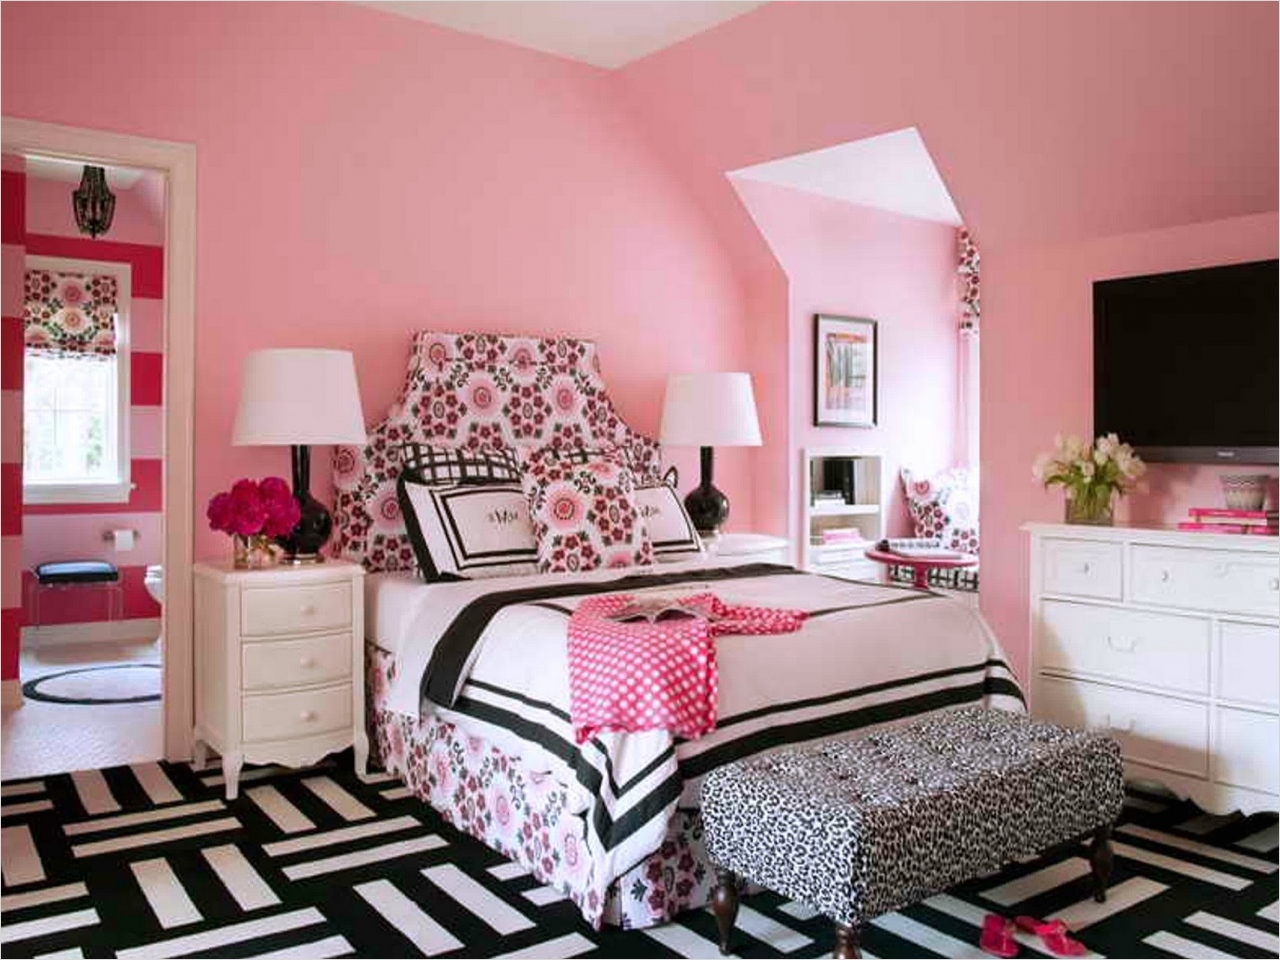 41 Amazing Dream Bedrooms for Teenage Girls 86 Rooms for Teenager Dream Bedrooms for Teenage Girls Teenage Girl Room Ideas Purple Teenager 2